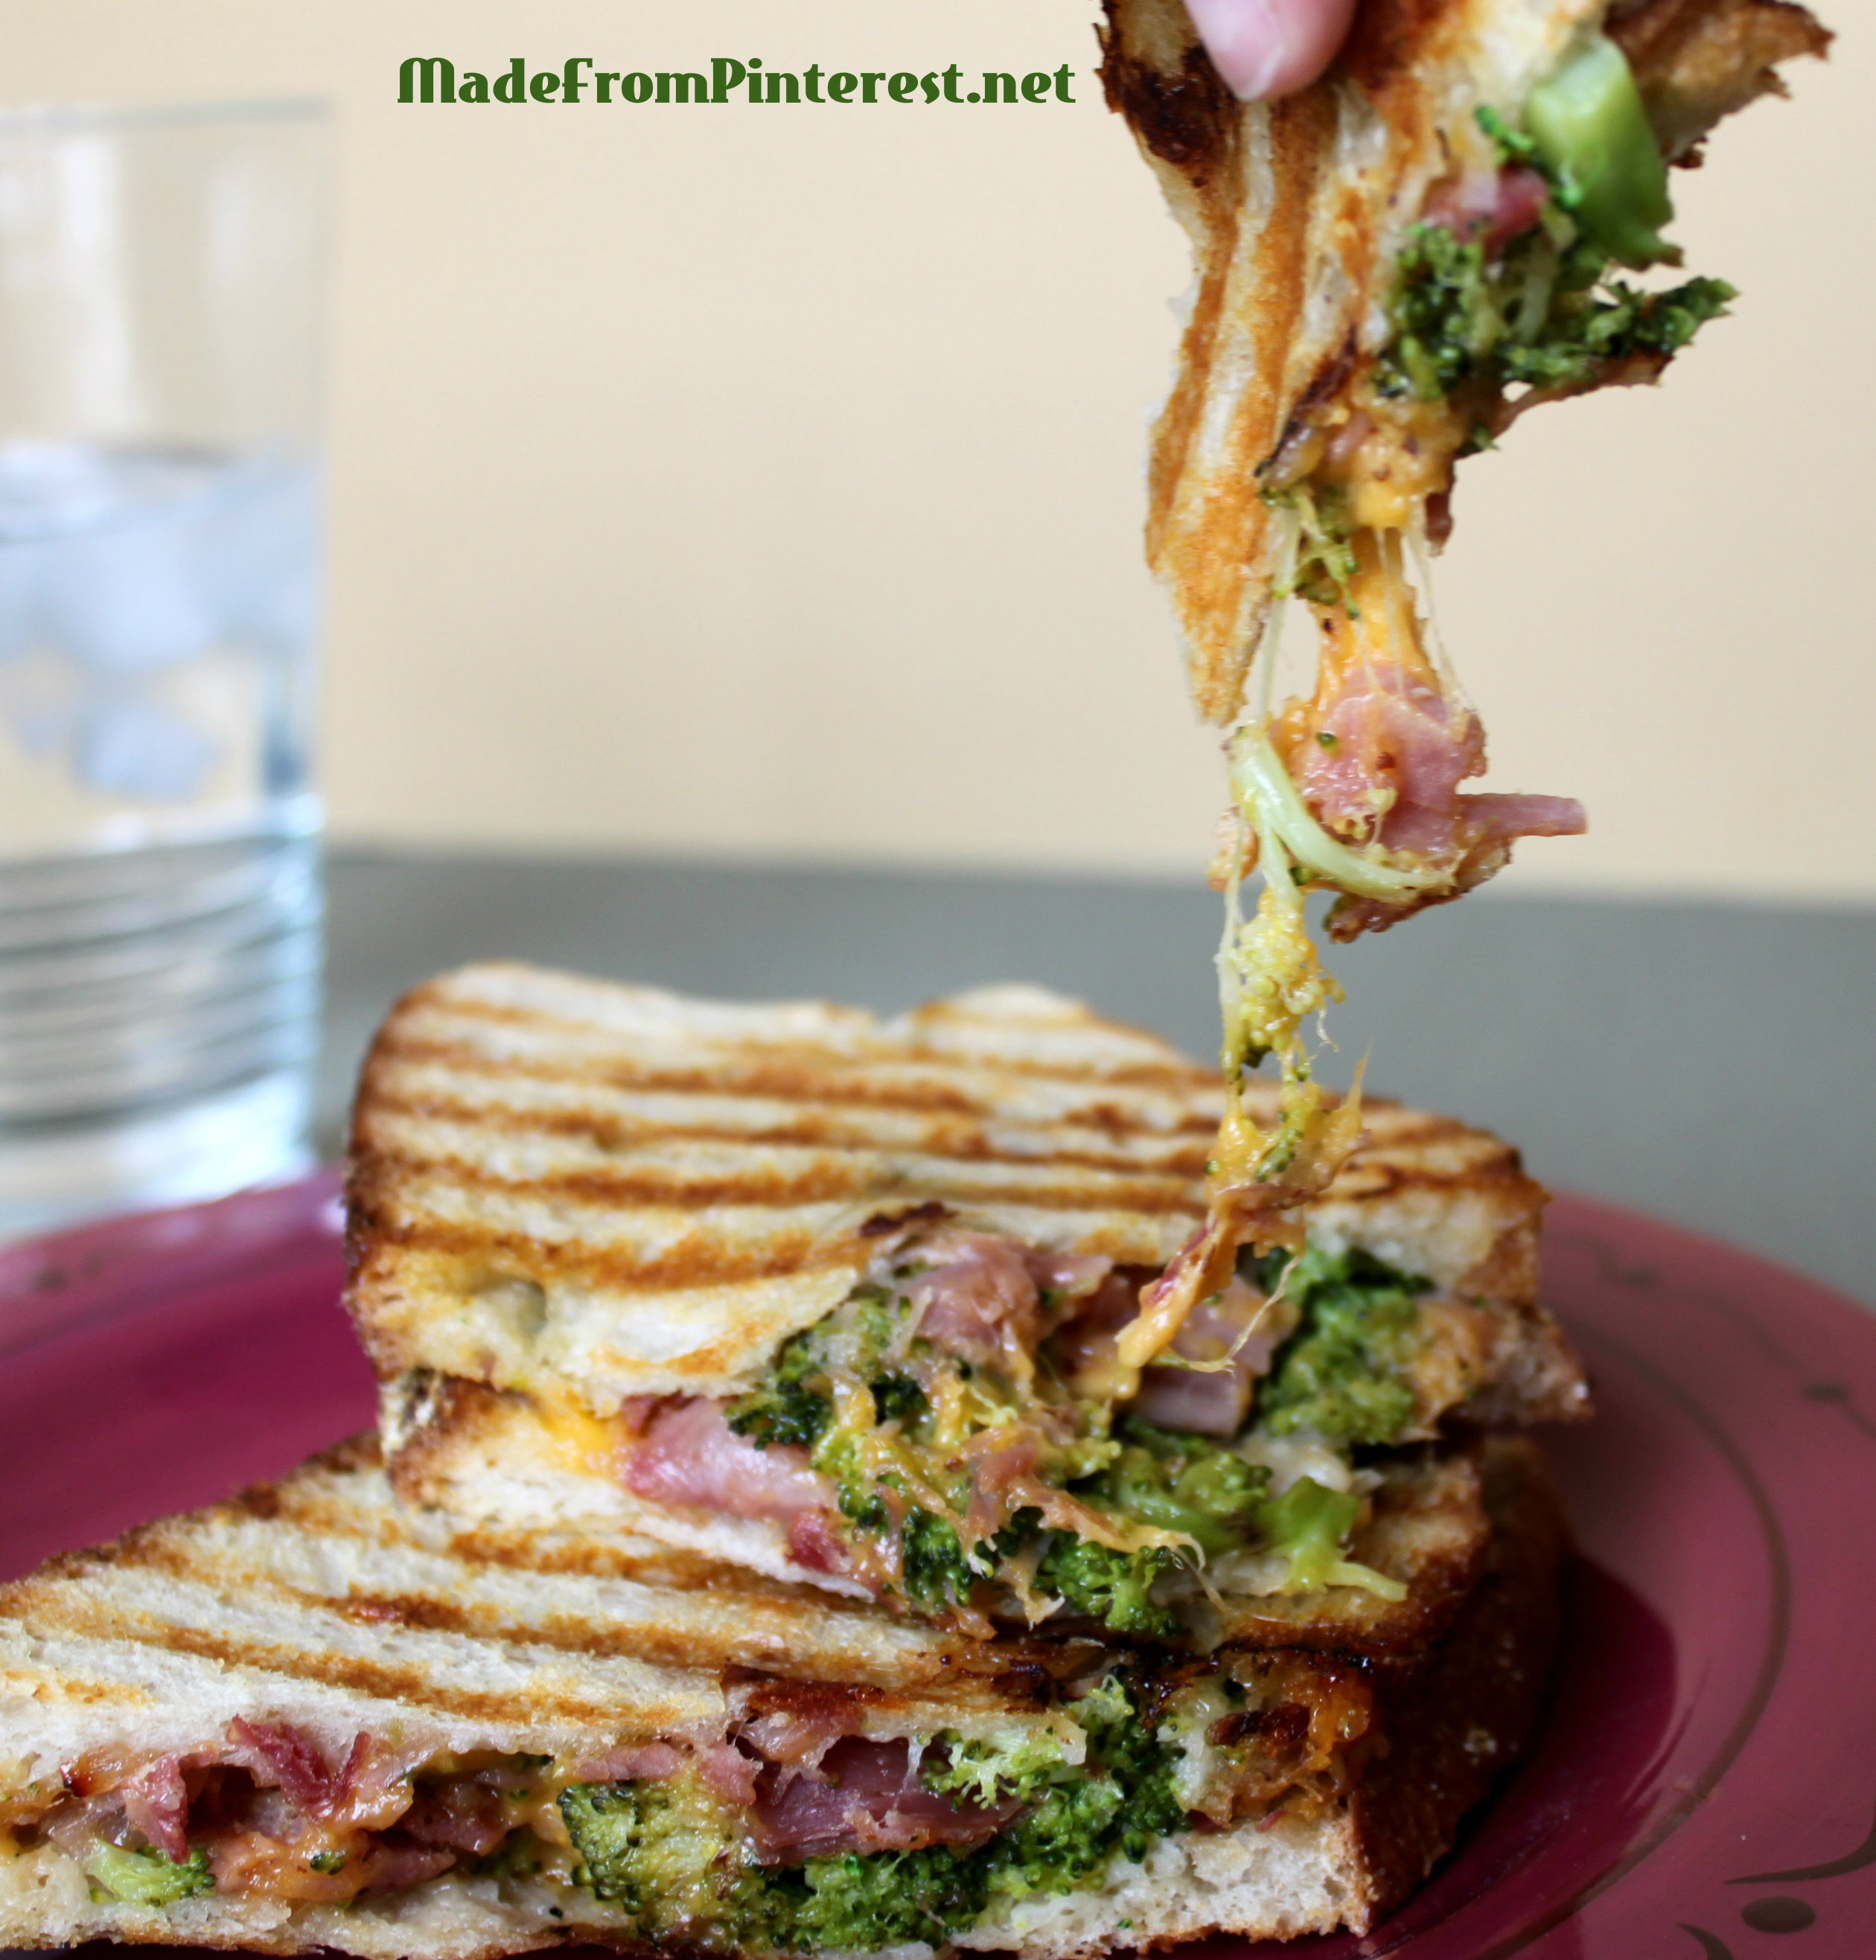 Broccoli Ham and Cheddar Panini MadeFromPinterest.net